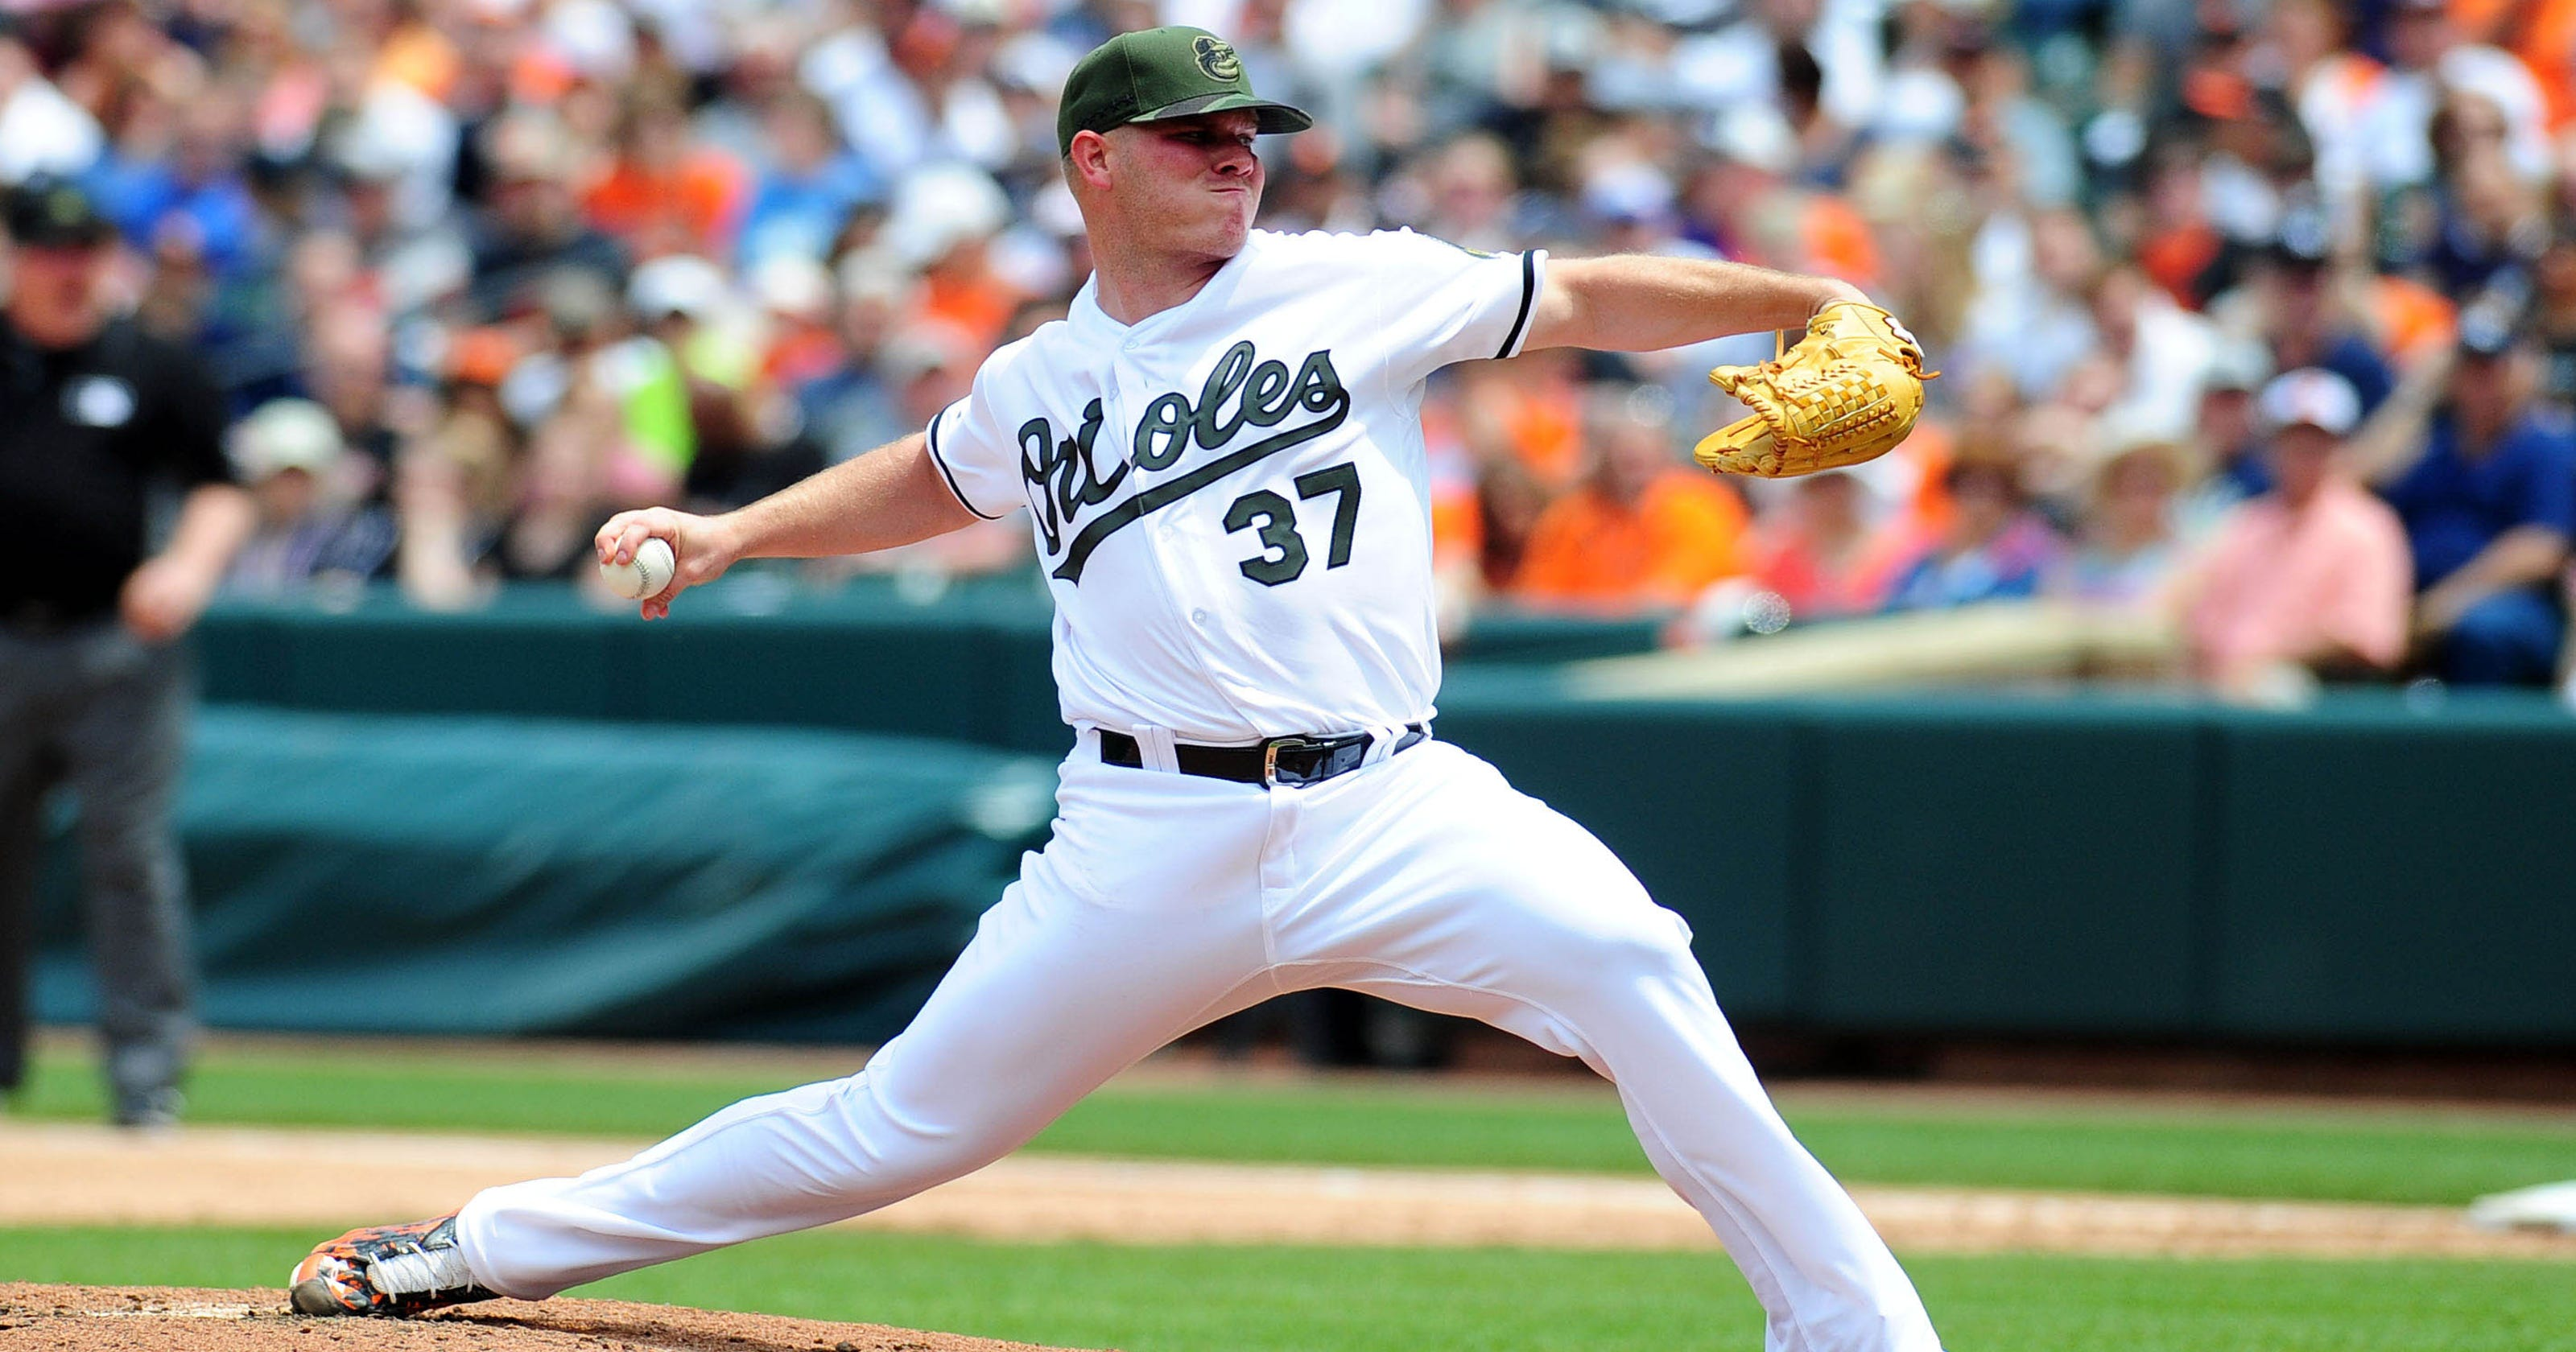 fa88df9a0 Dylan Bundy sharp as Orioles beat Yankees 3-2 to end 7-game skid